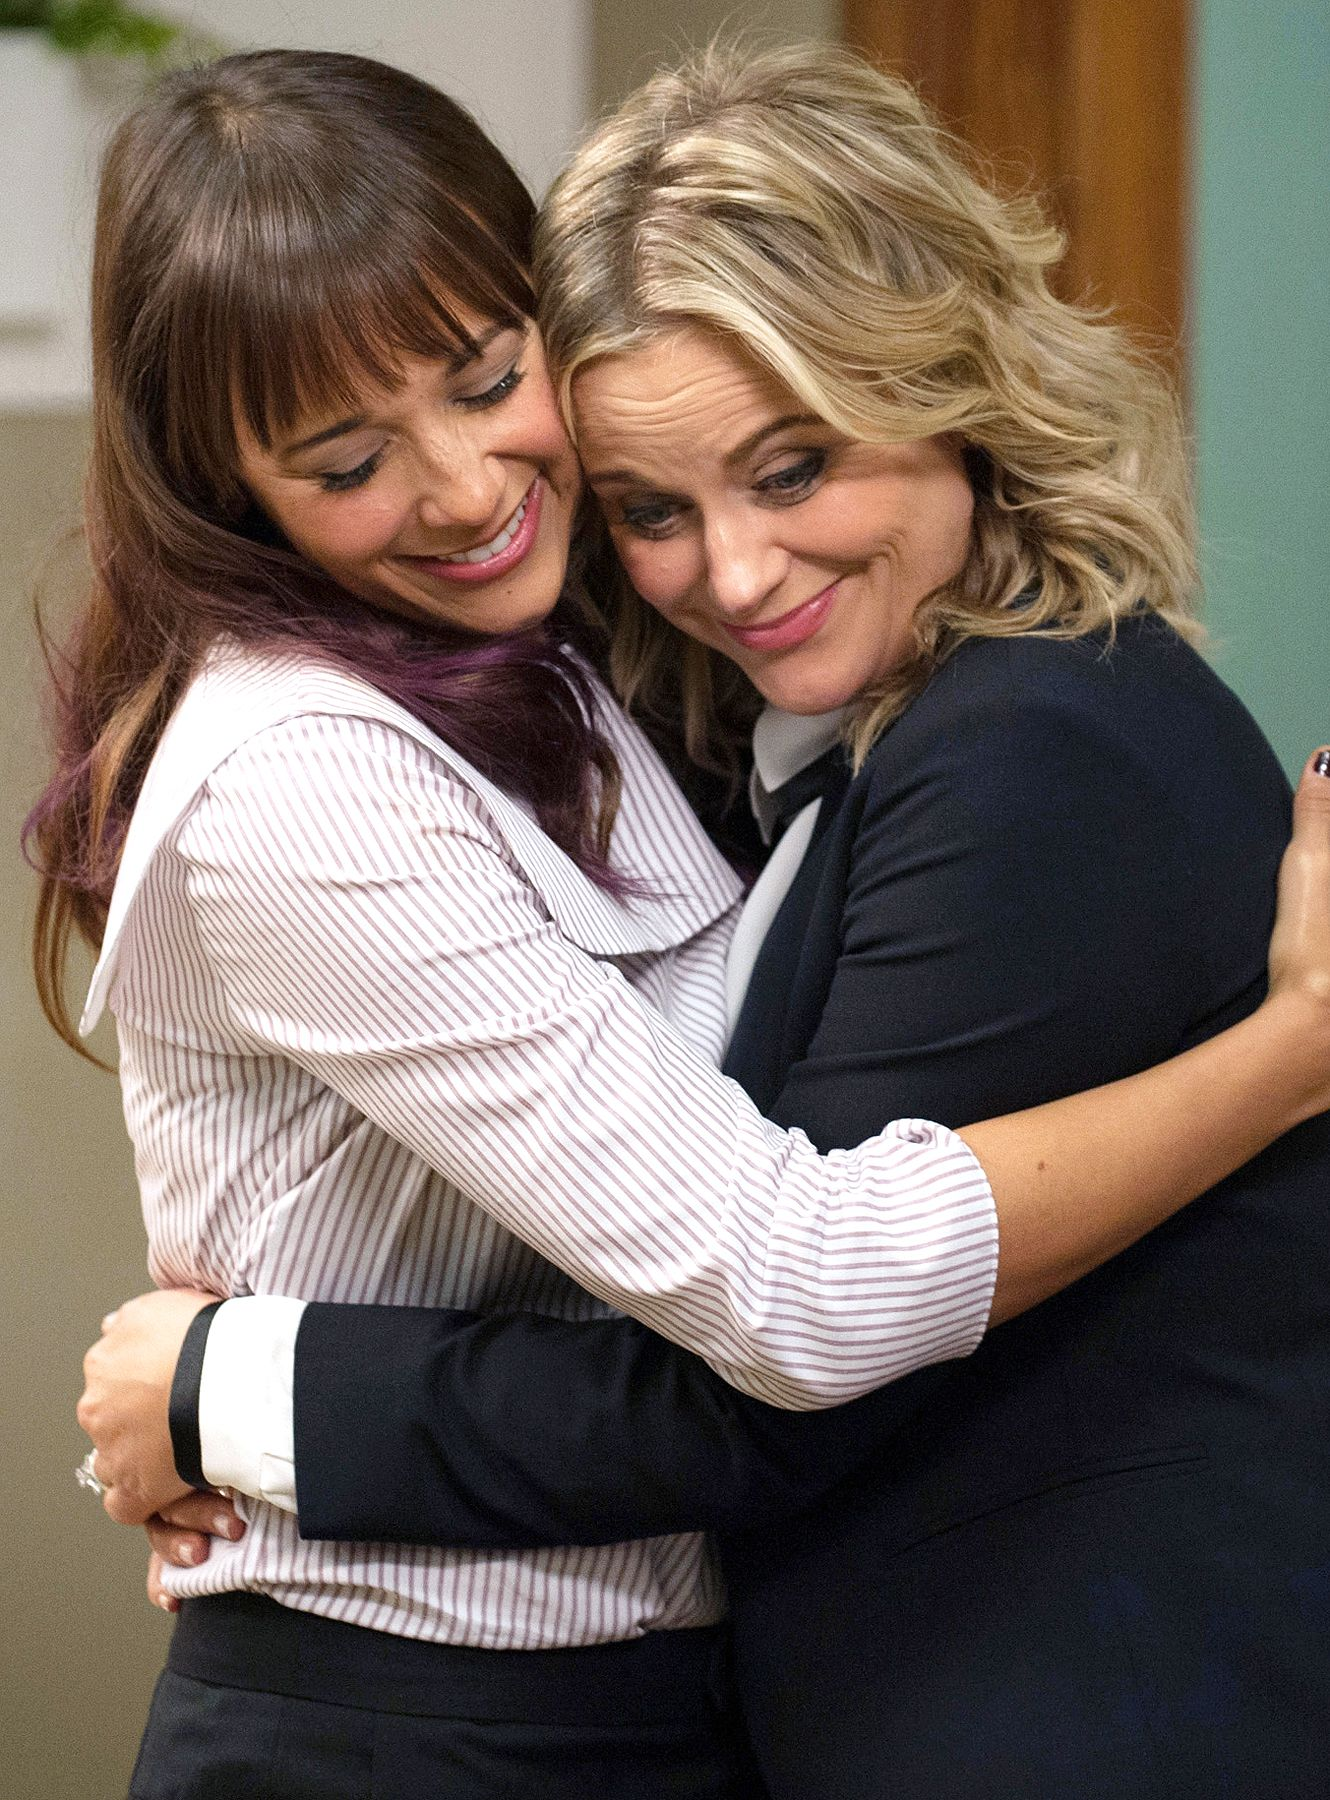 Friendships: Leslie Knope and Ann Perkins hug it out on Parks and Recreation.